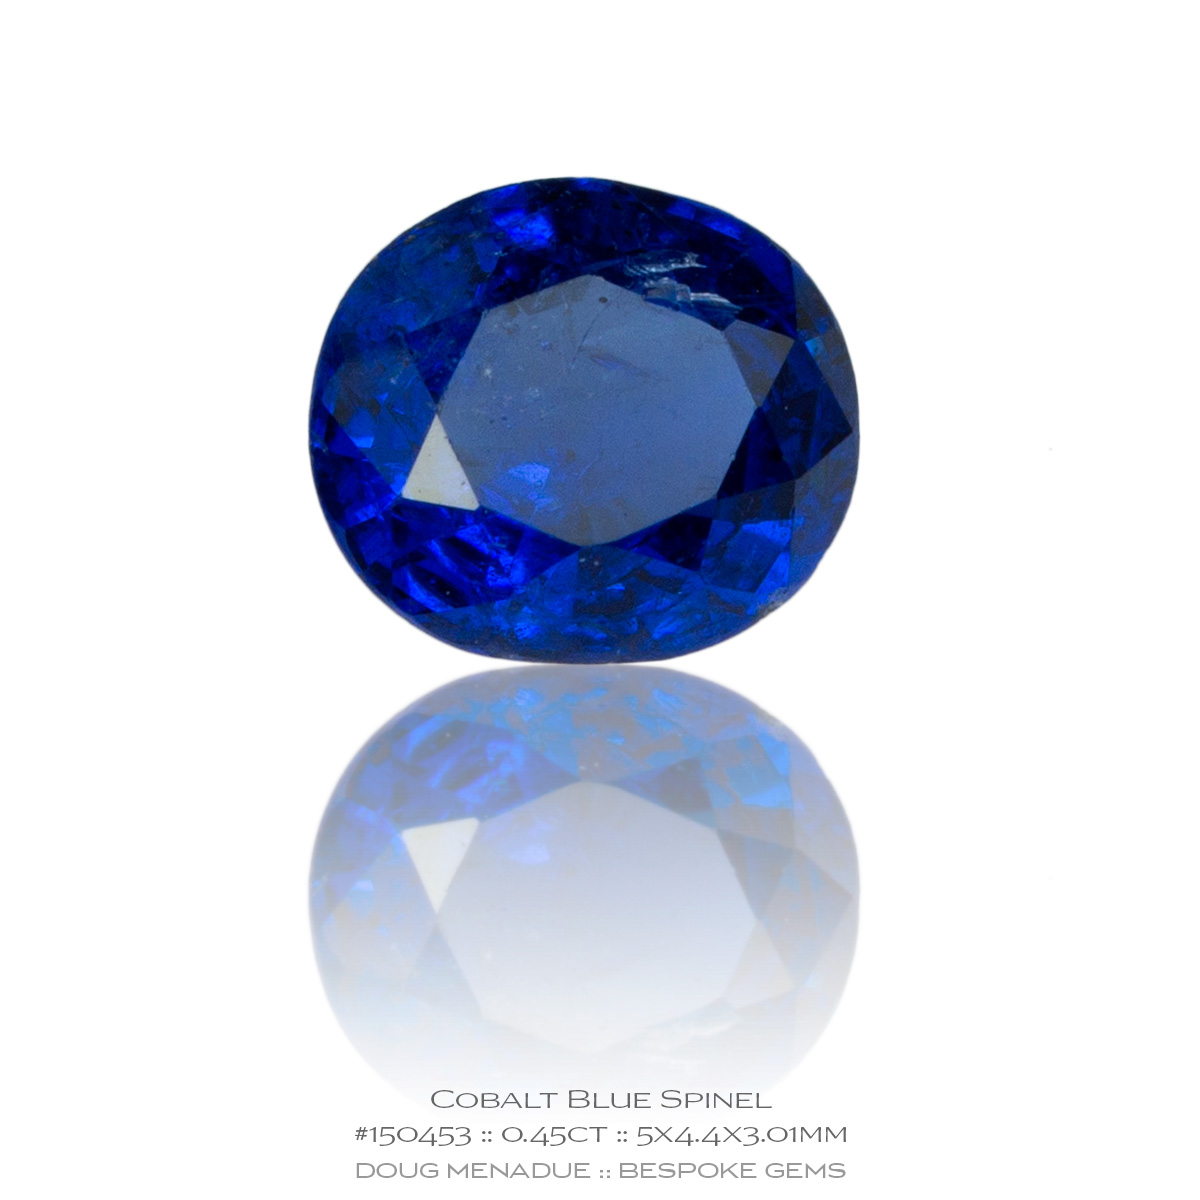 #150453, Cobalt Blue Cobalt Spinel, Oval, 0.45 Carats, 13.16X13.11X10.41mm - Doug Menadue :: Bespoke Gems - WWW.BESPOKE-GEMS.COM - Precision Gemcutting and Lapidary Services In Sydney Australia